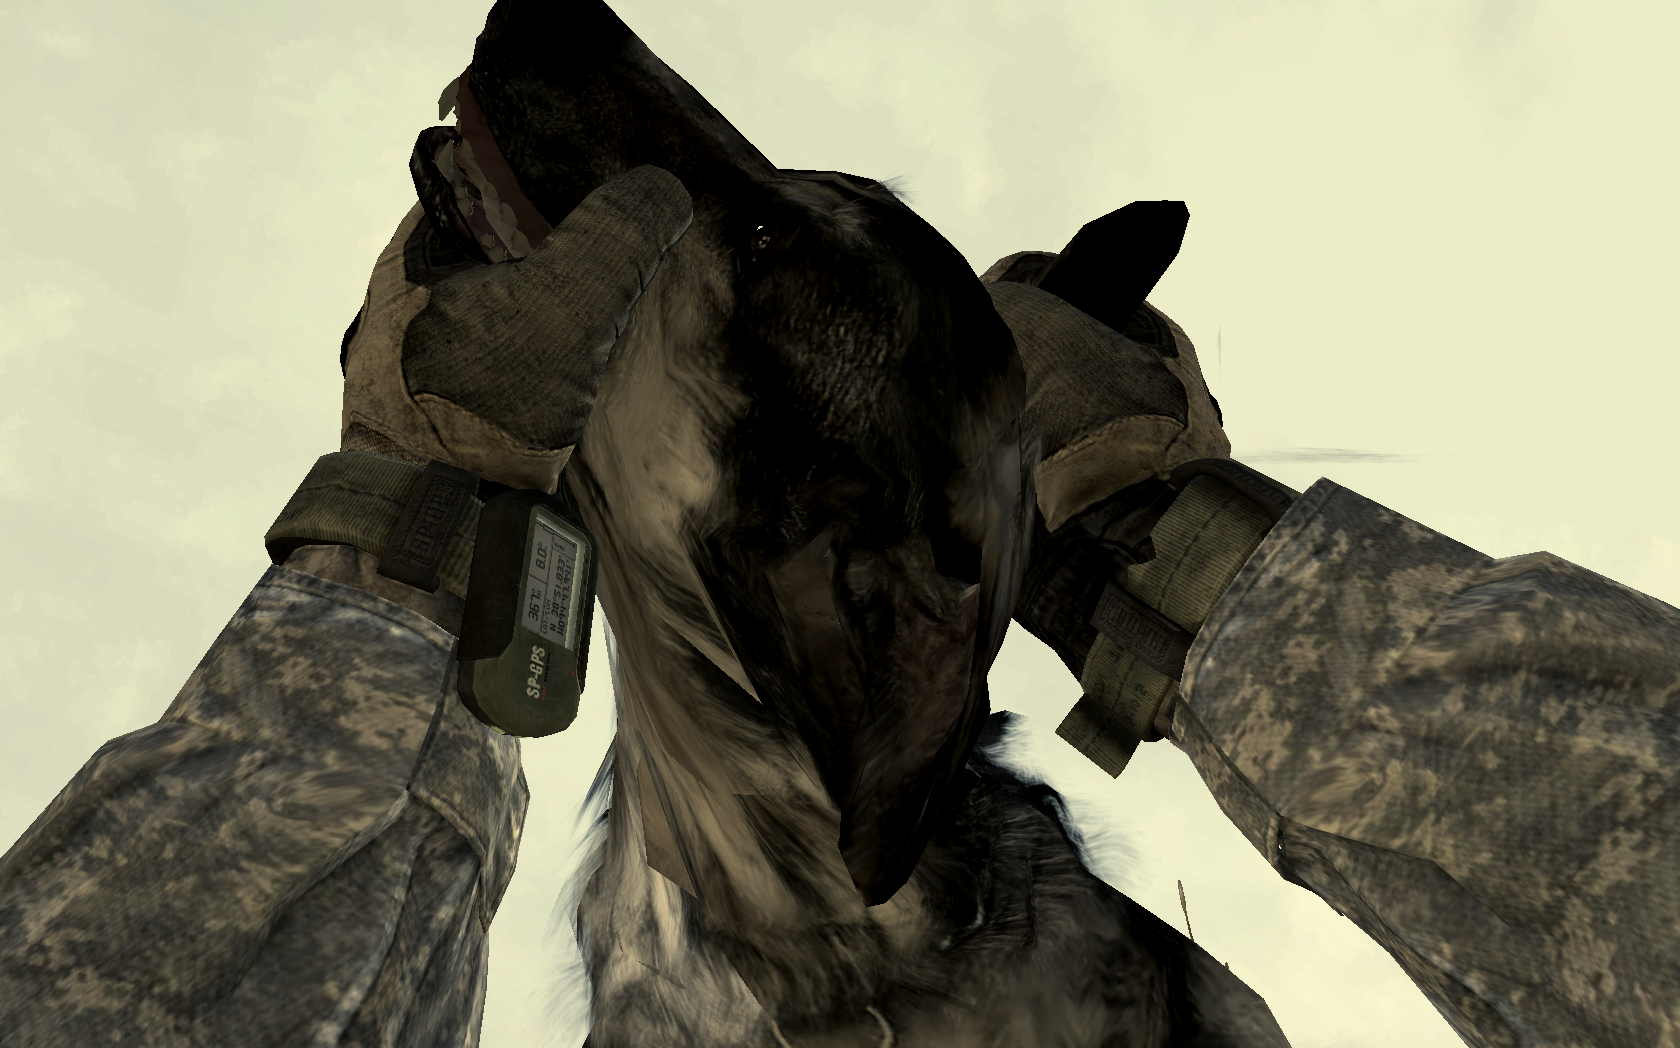 Player_countering_an_attack_dog_MW2.png